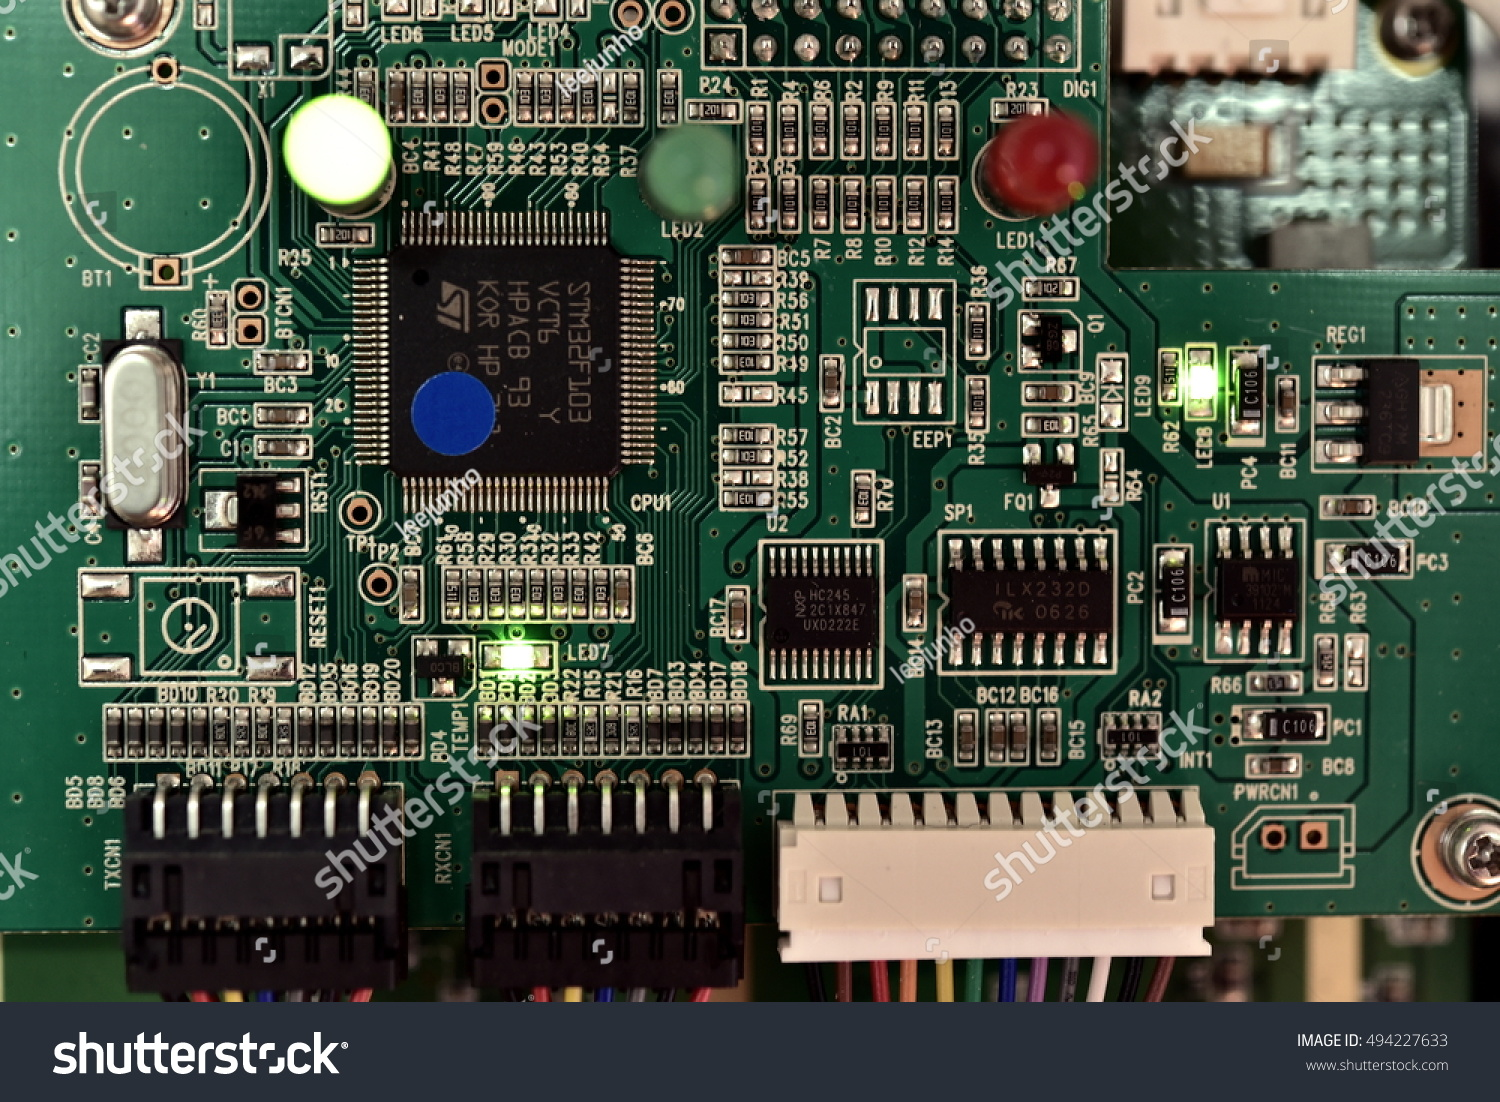 Electronic Components Circuit Board Stock Photo Edit Now Green Computer With Electronics And